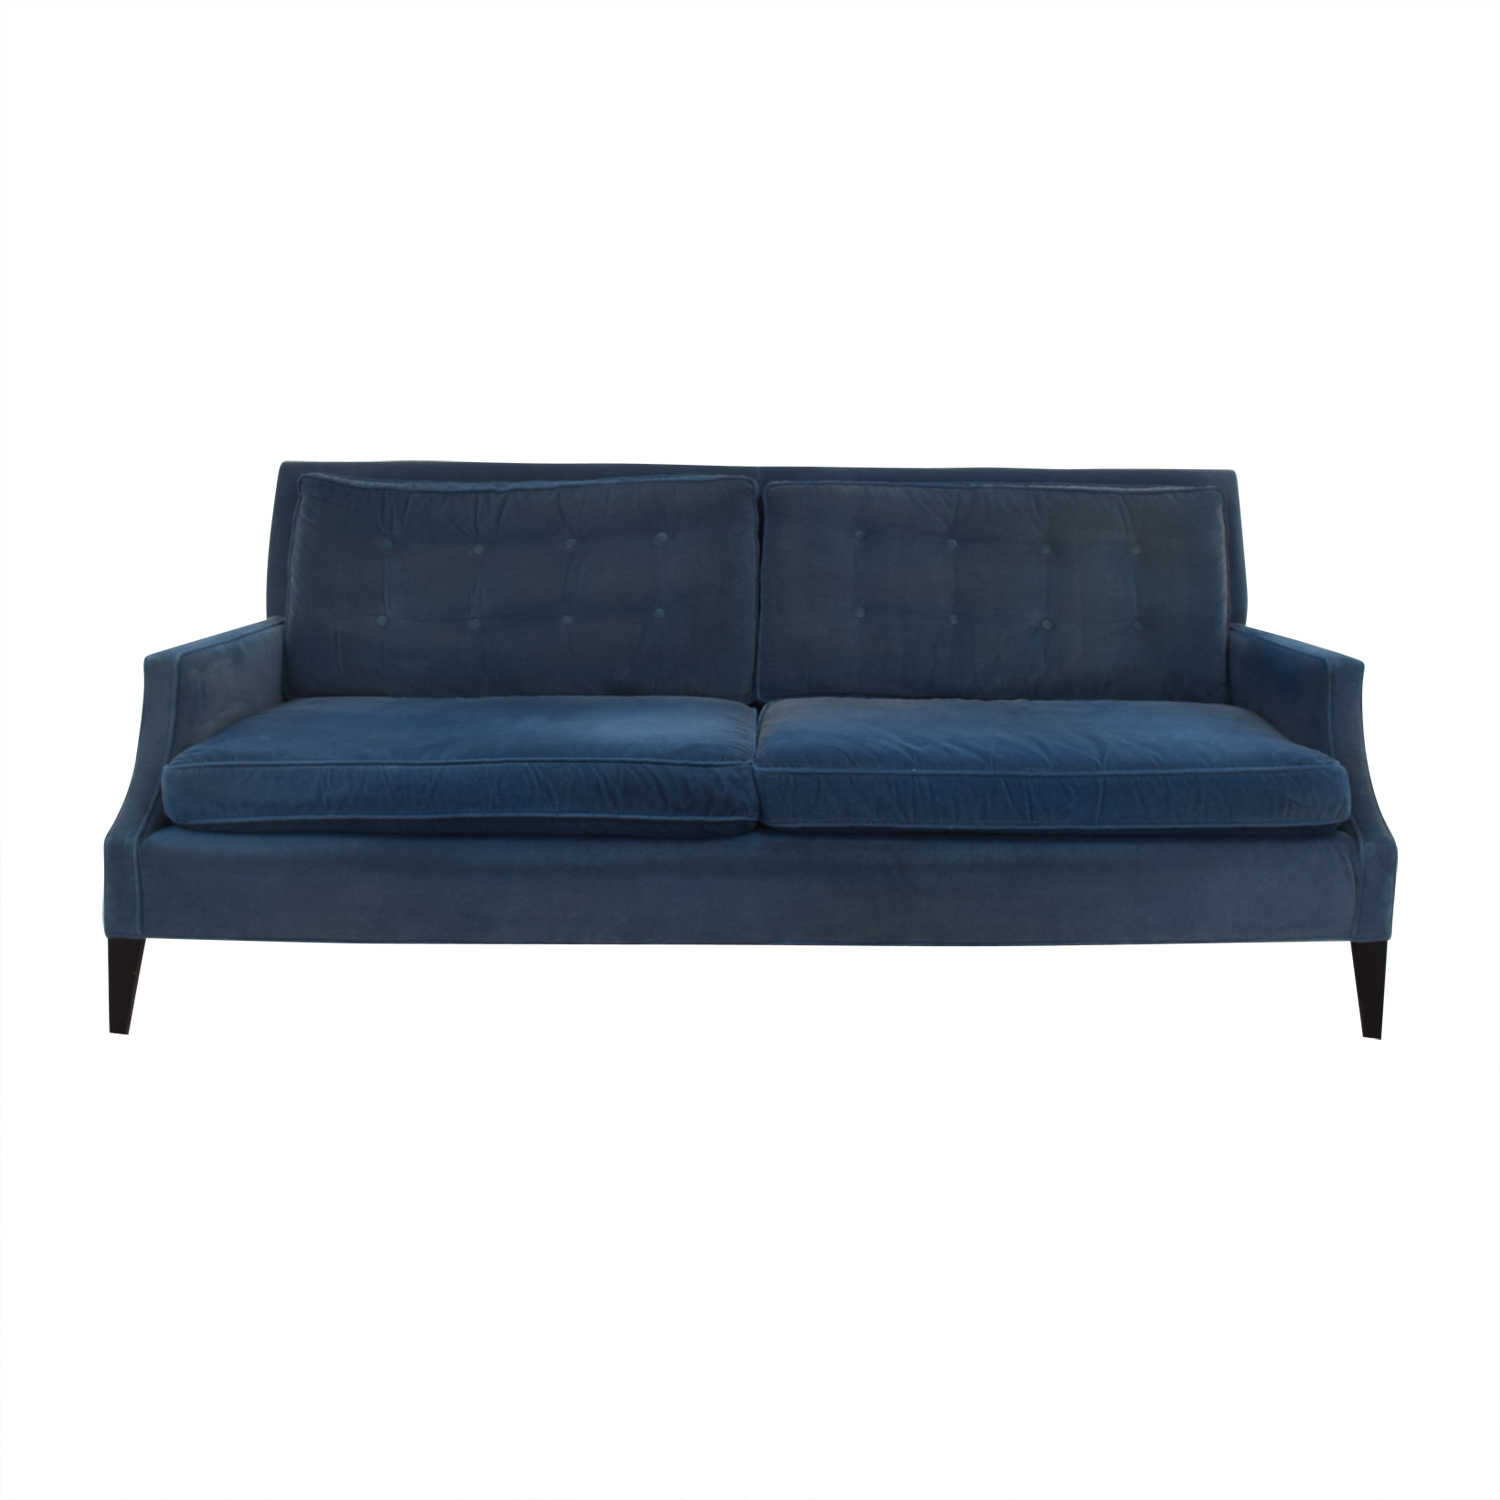 Mitchell Gold + Bob Williams Velvet Sofa sale